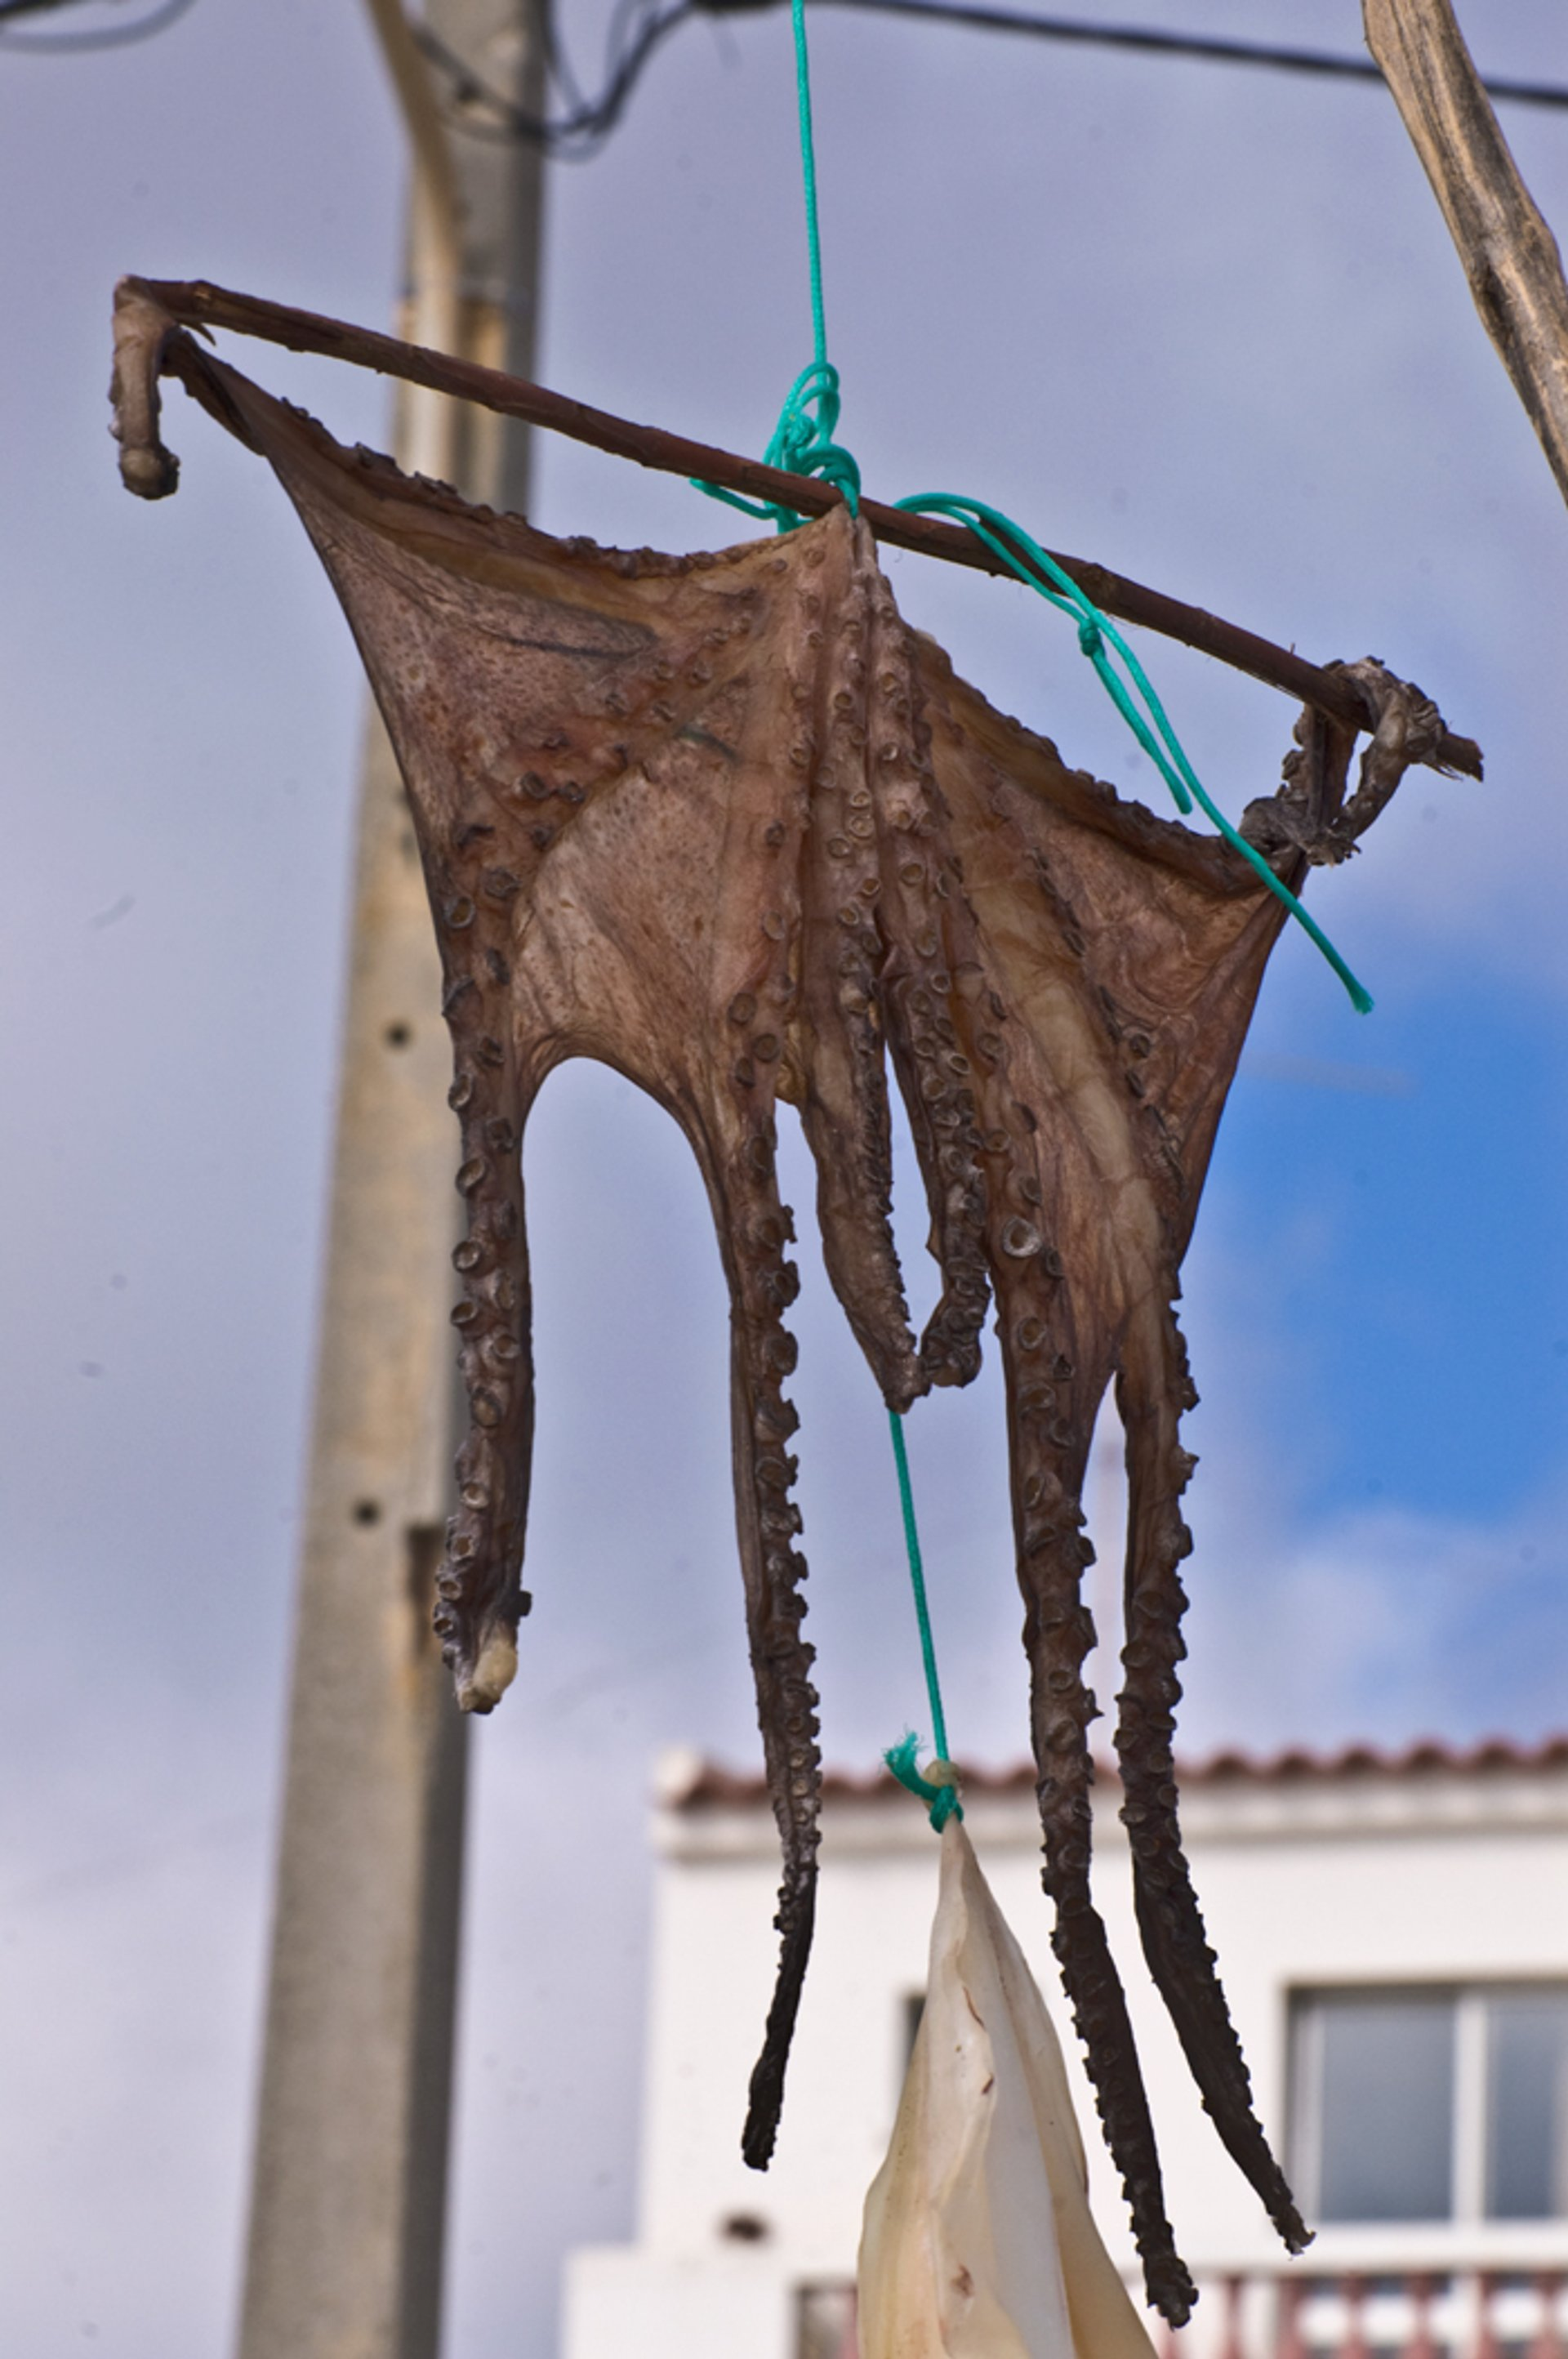 Sun-Dried Octopus in Portugal - Best Season 2020